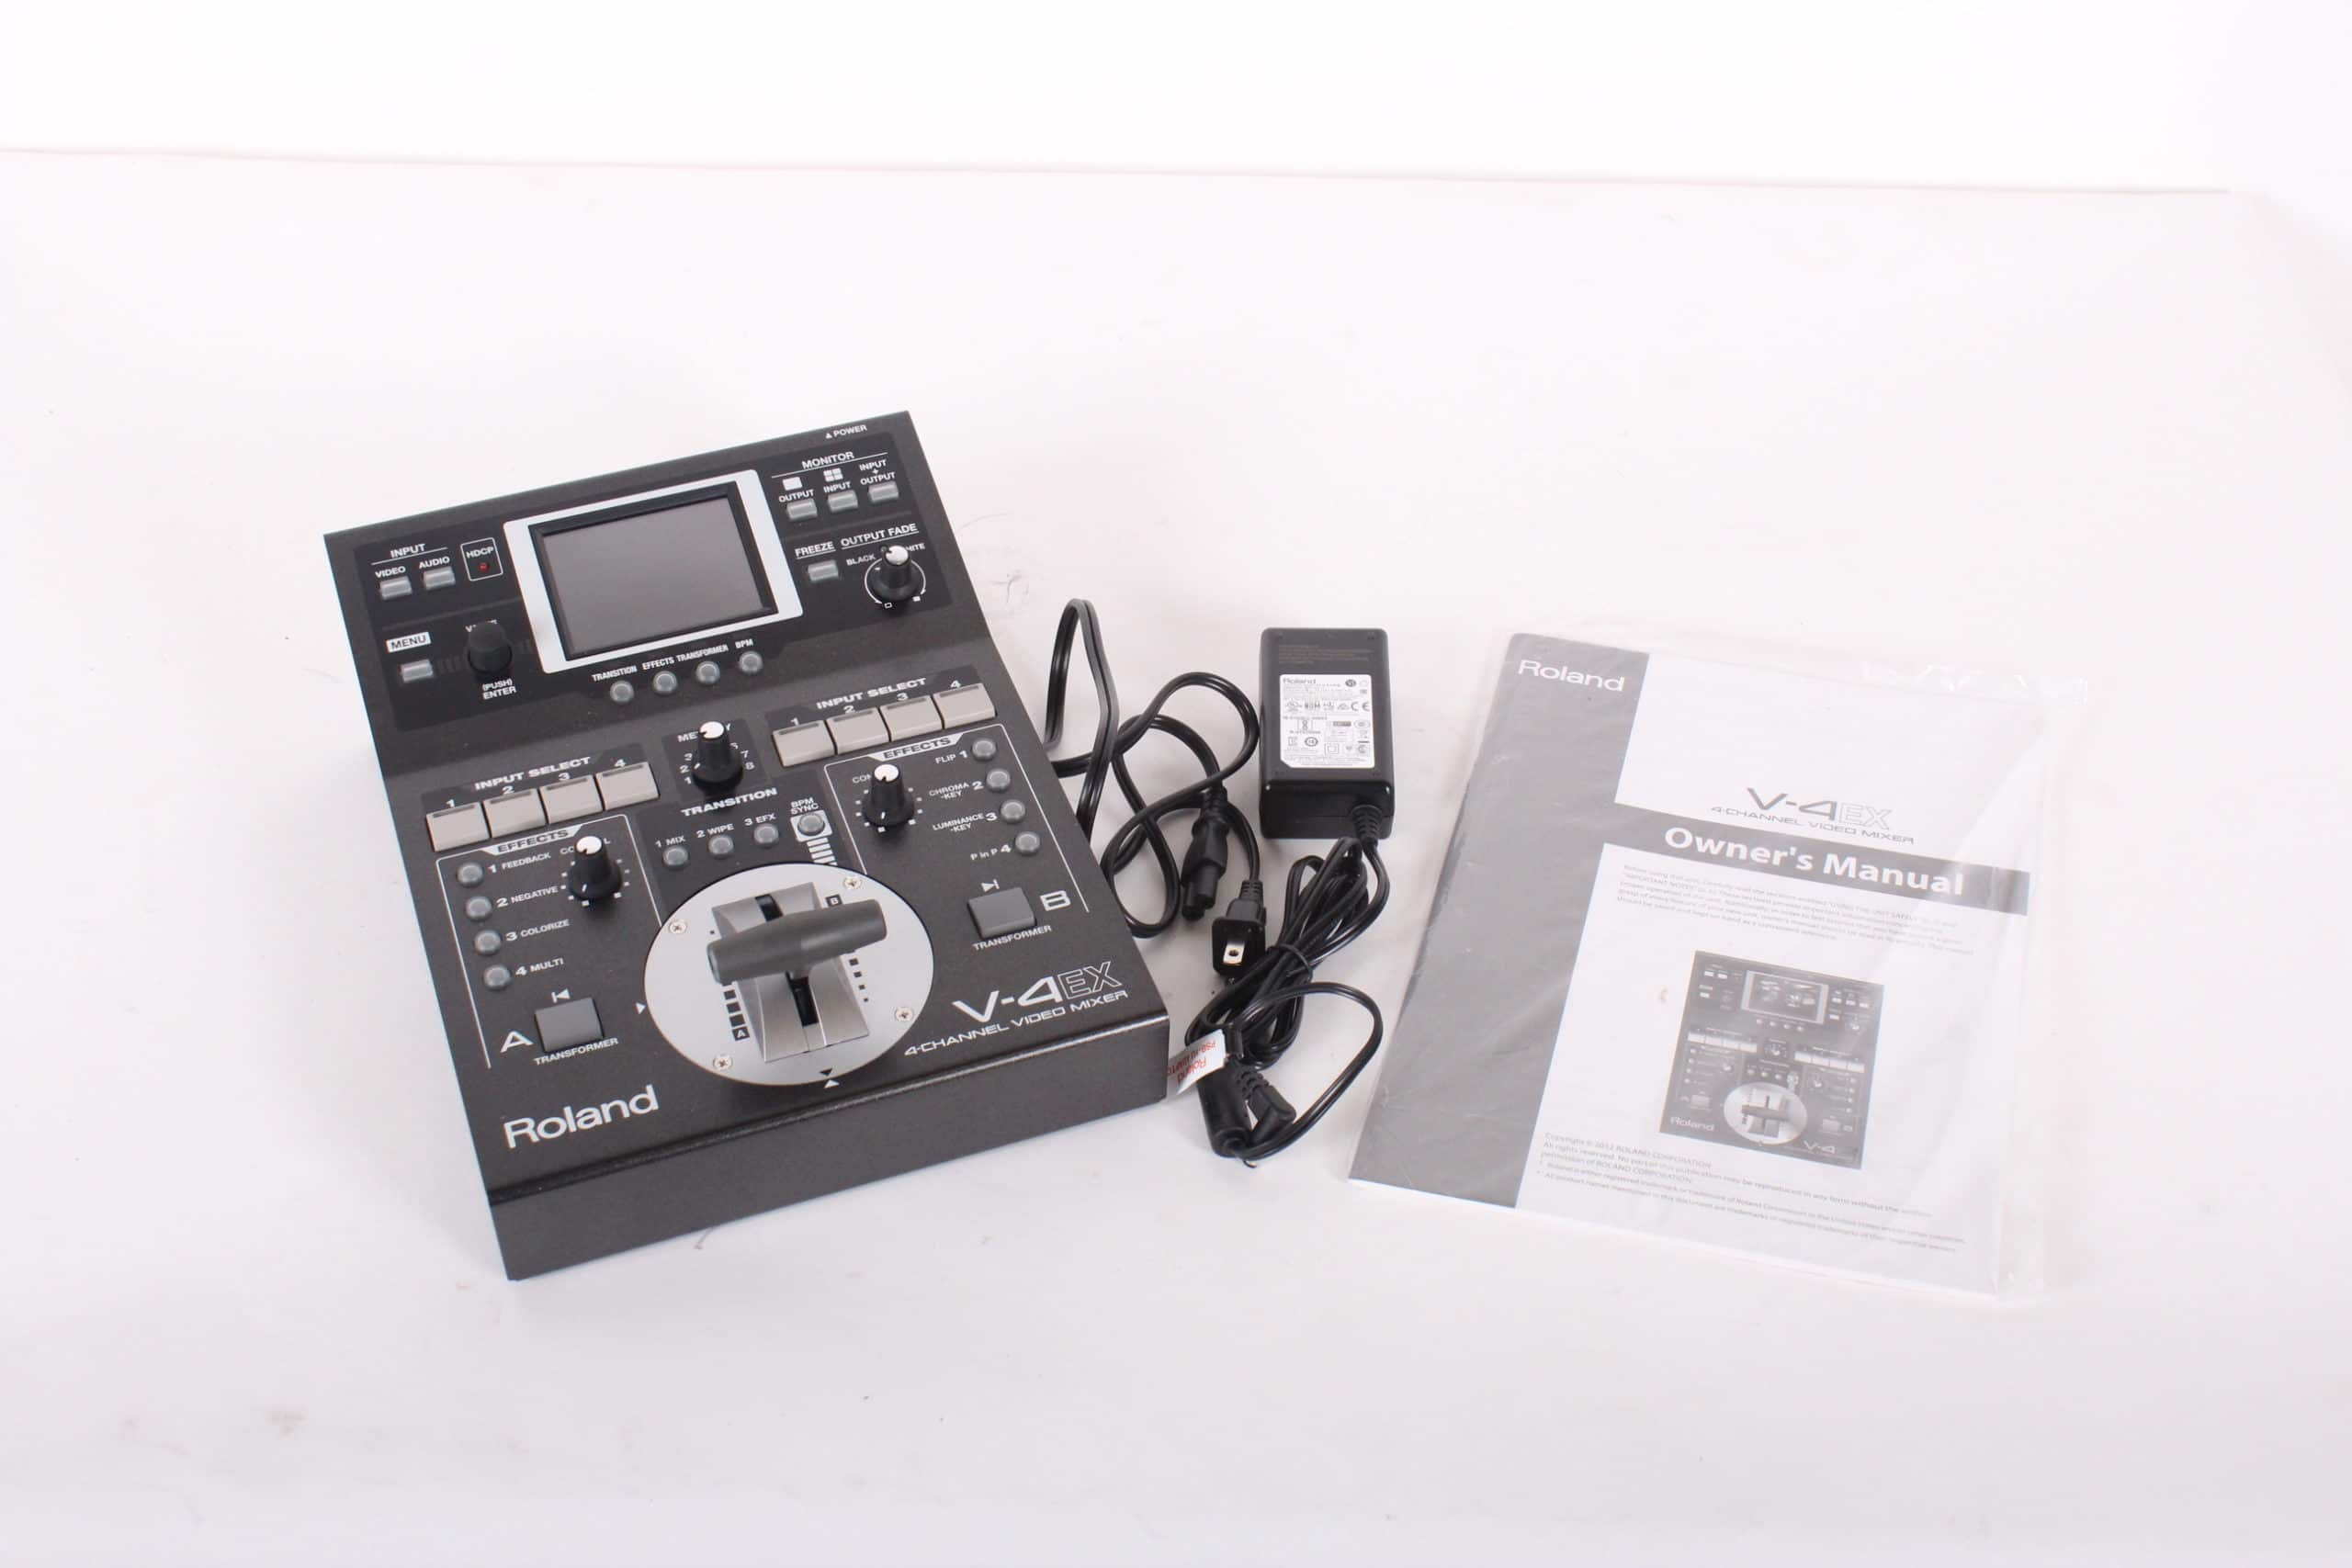 roland-v-4ex-4-channel-digital-video-mixer-with-effects-b-stock-demo MAIN